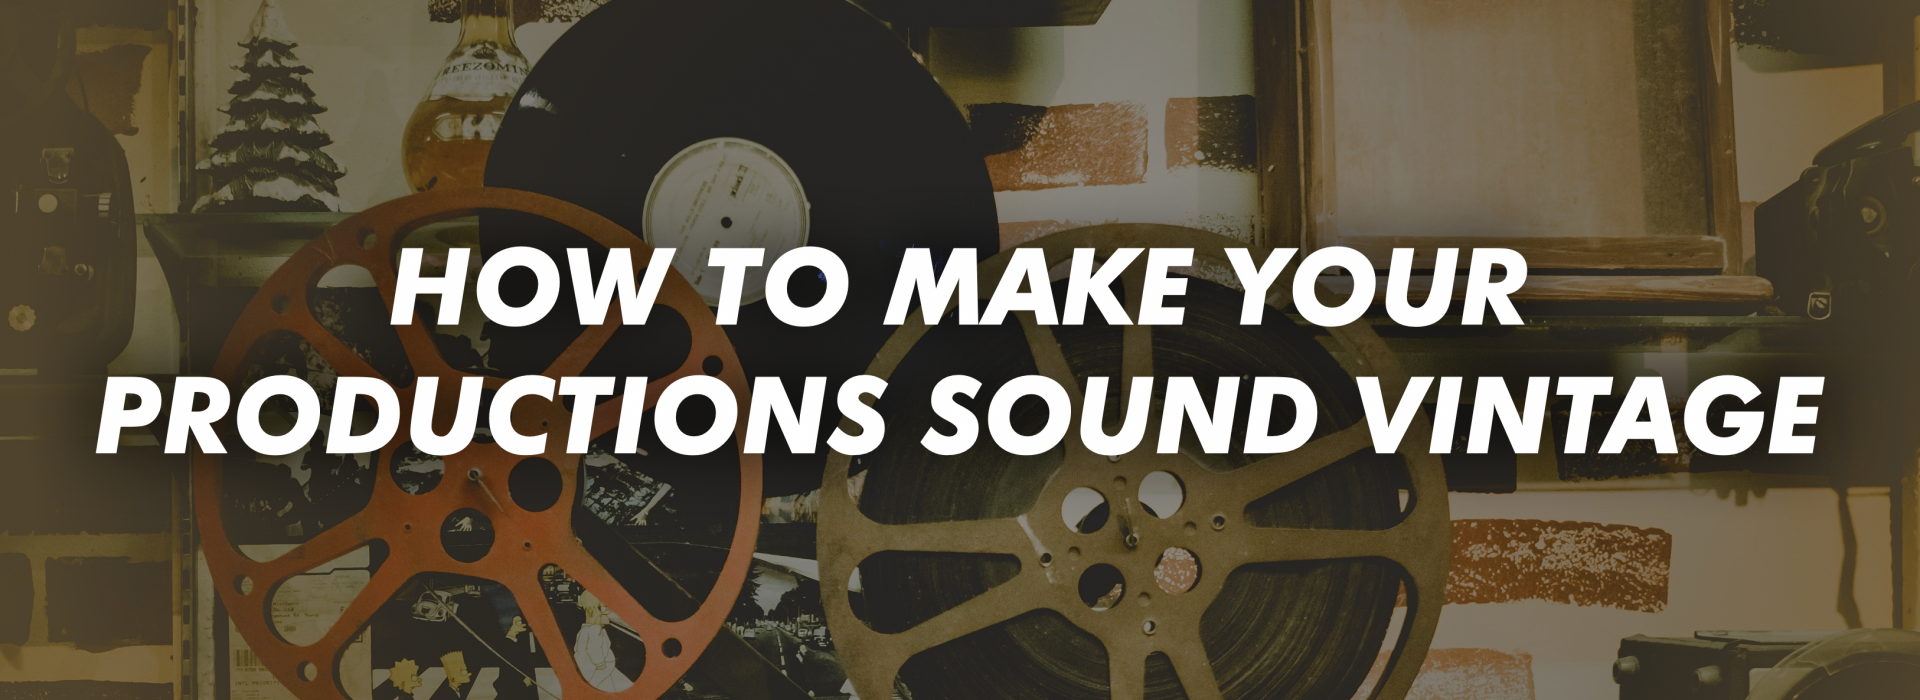 How To Make Your Productions Sound Vintage